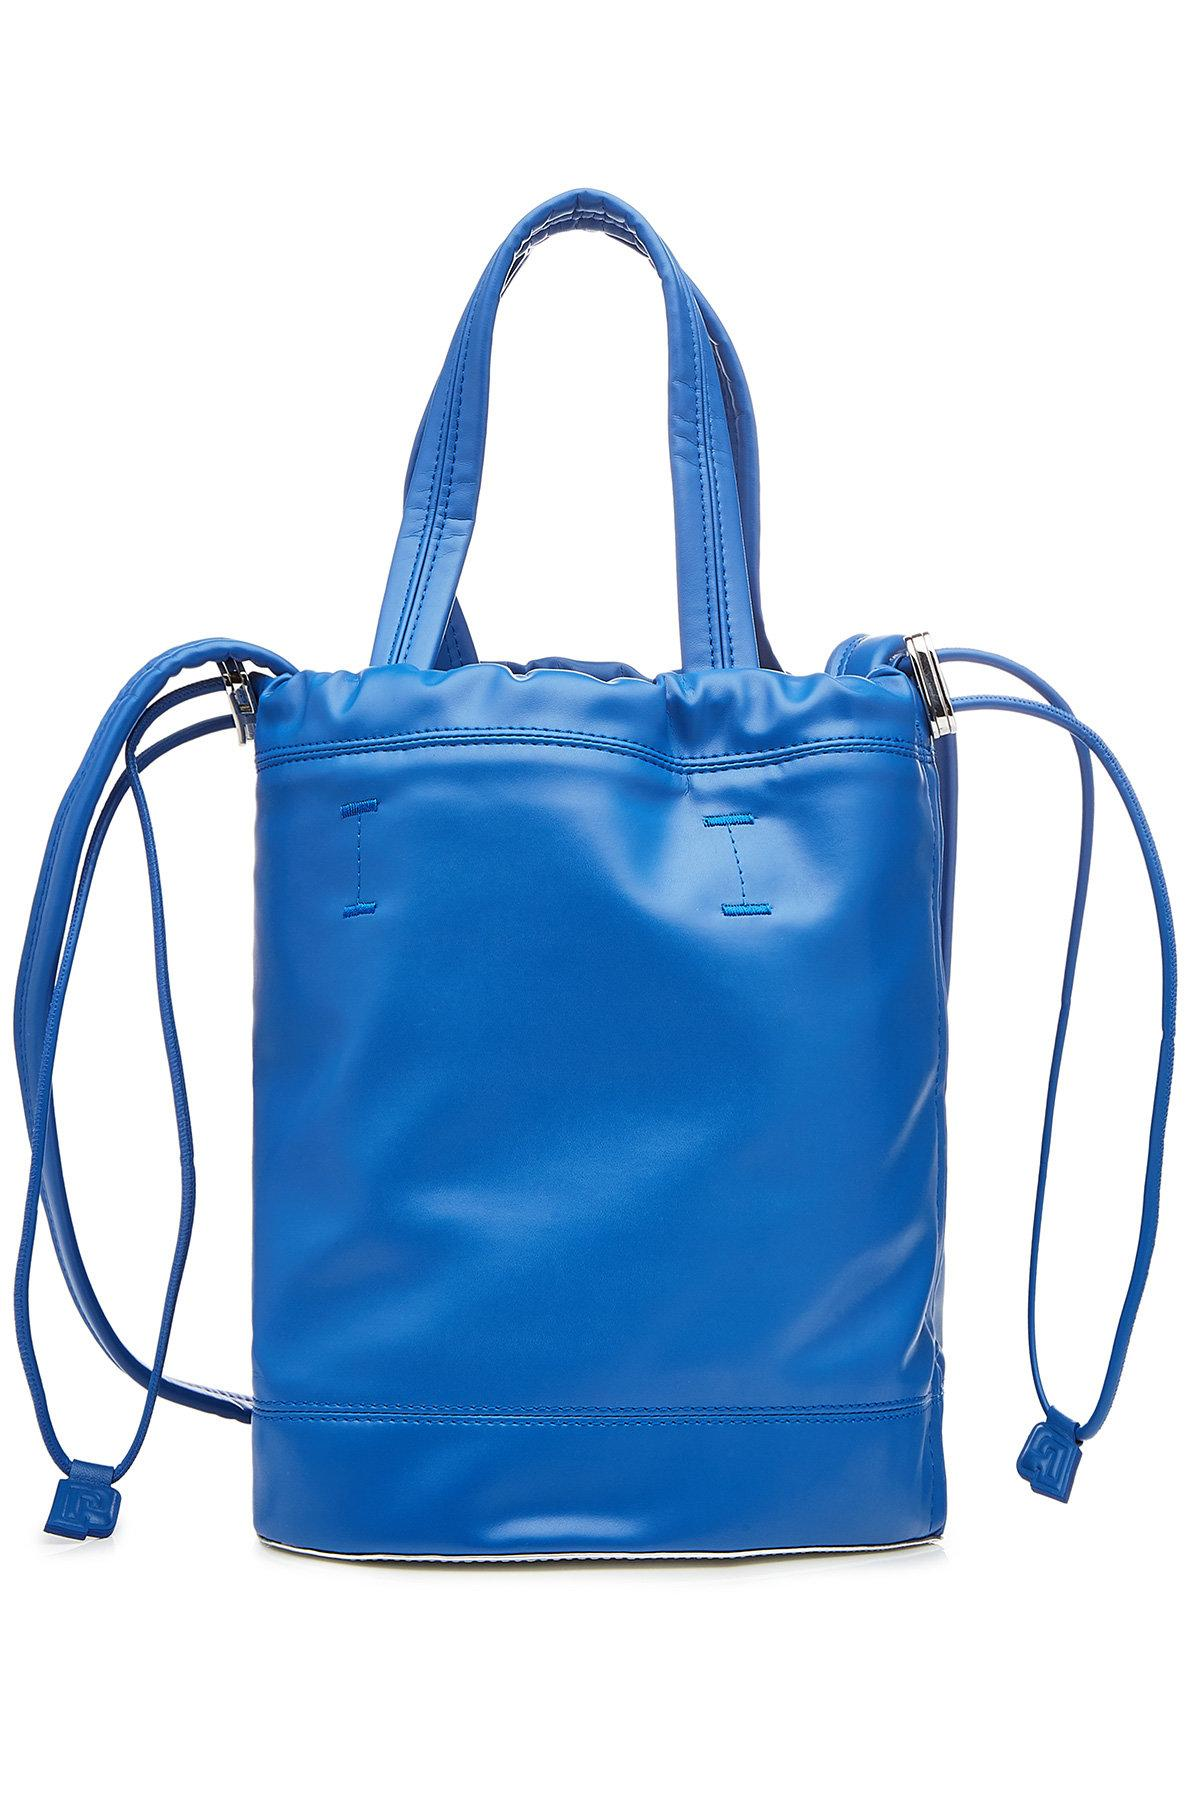 Paco Rabanne Classic Bucket-Tote In Blue